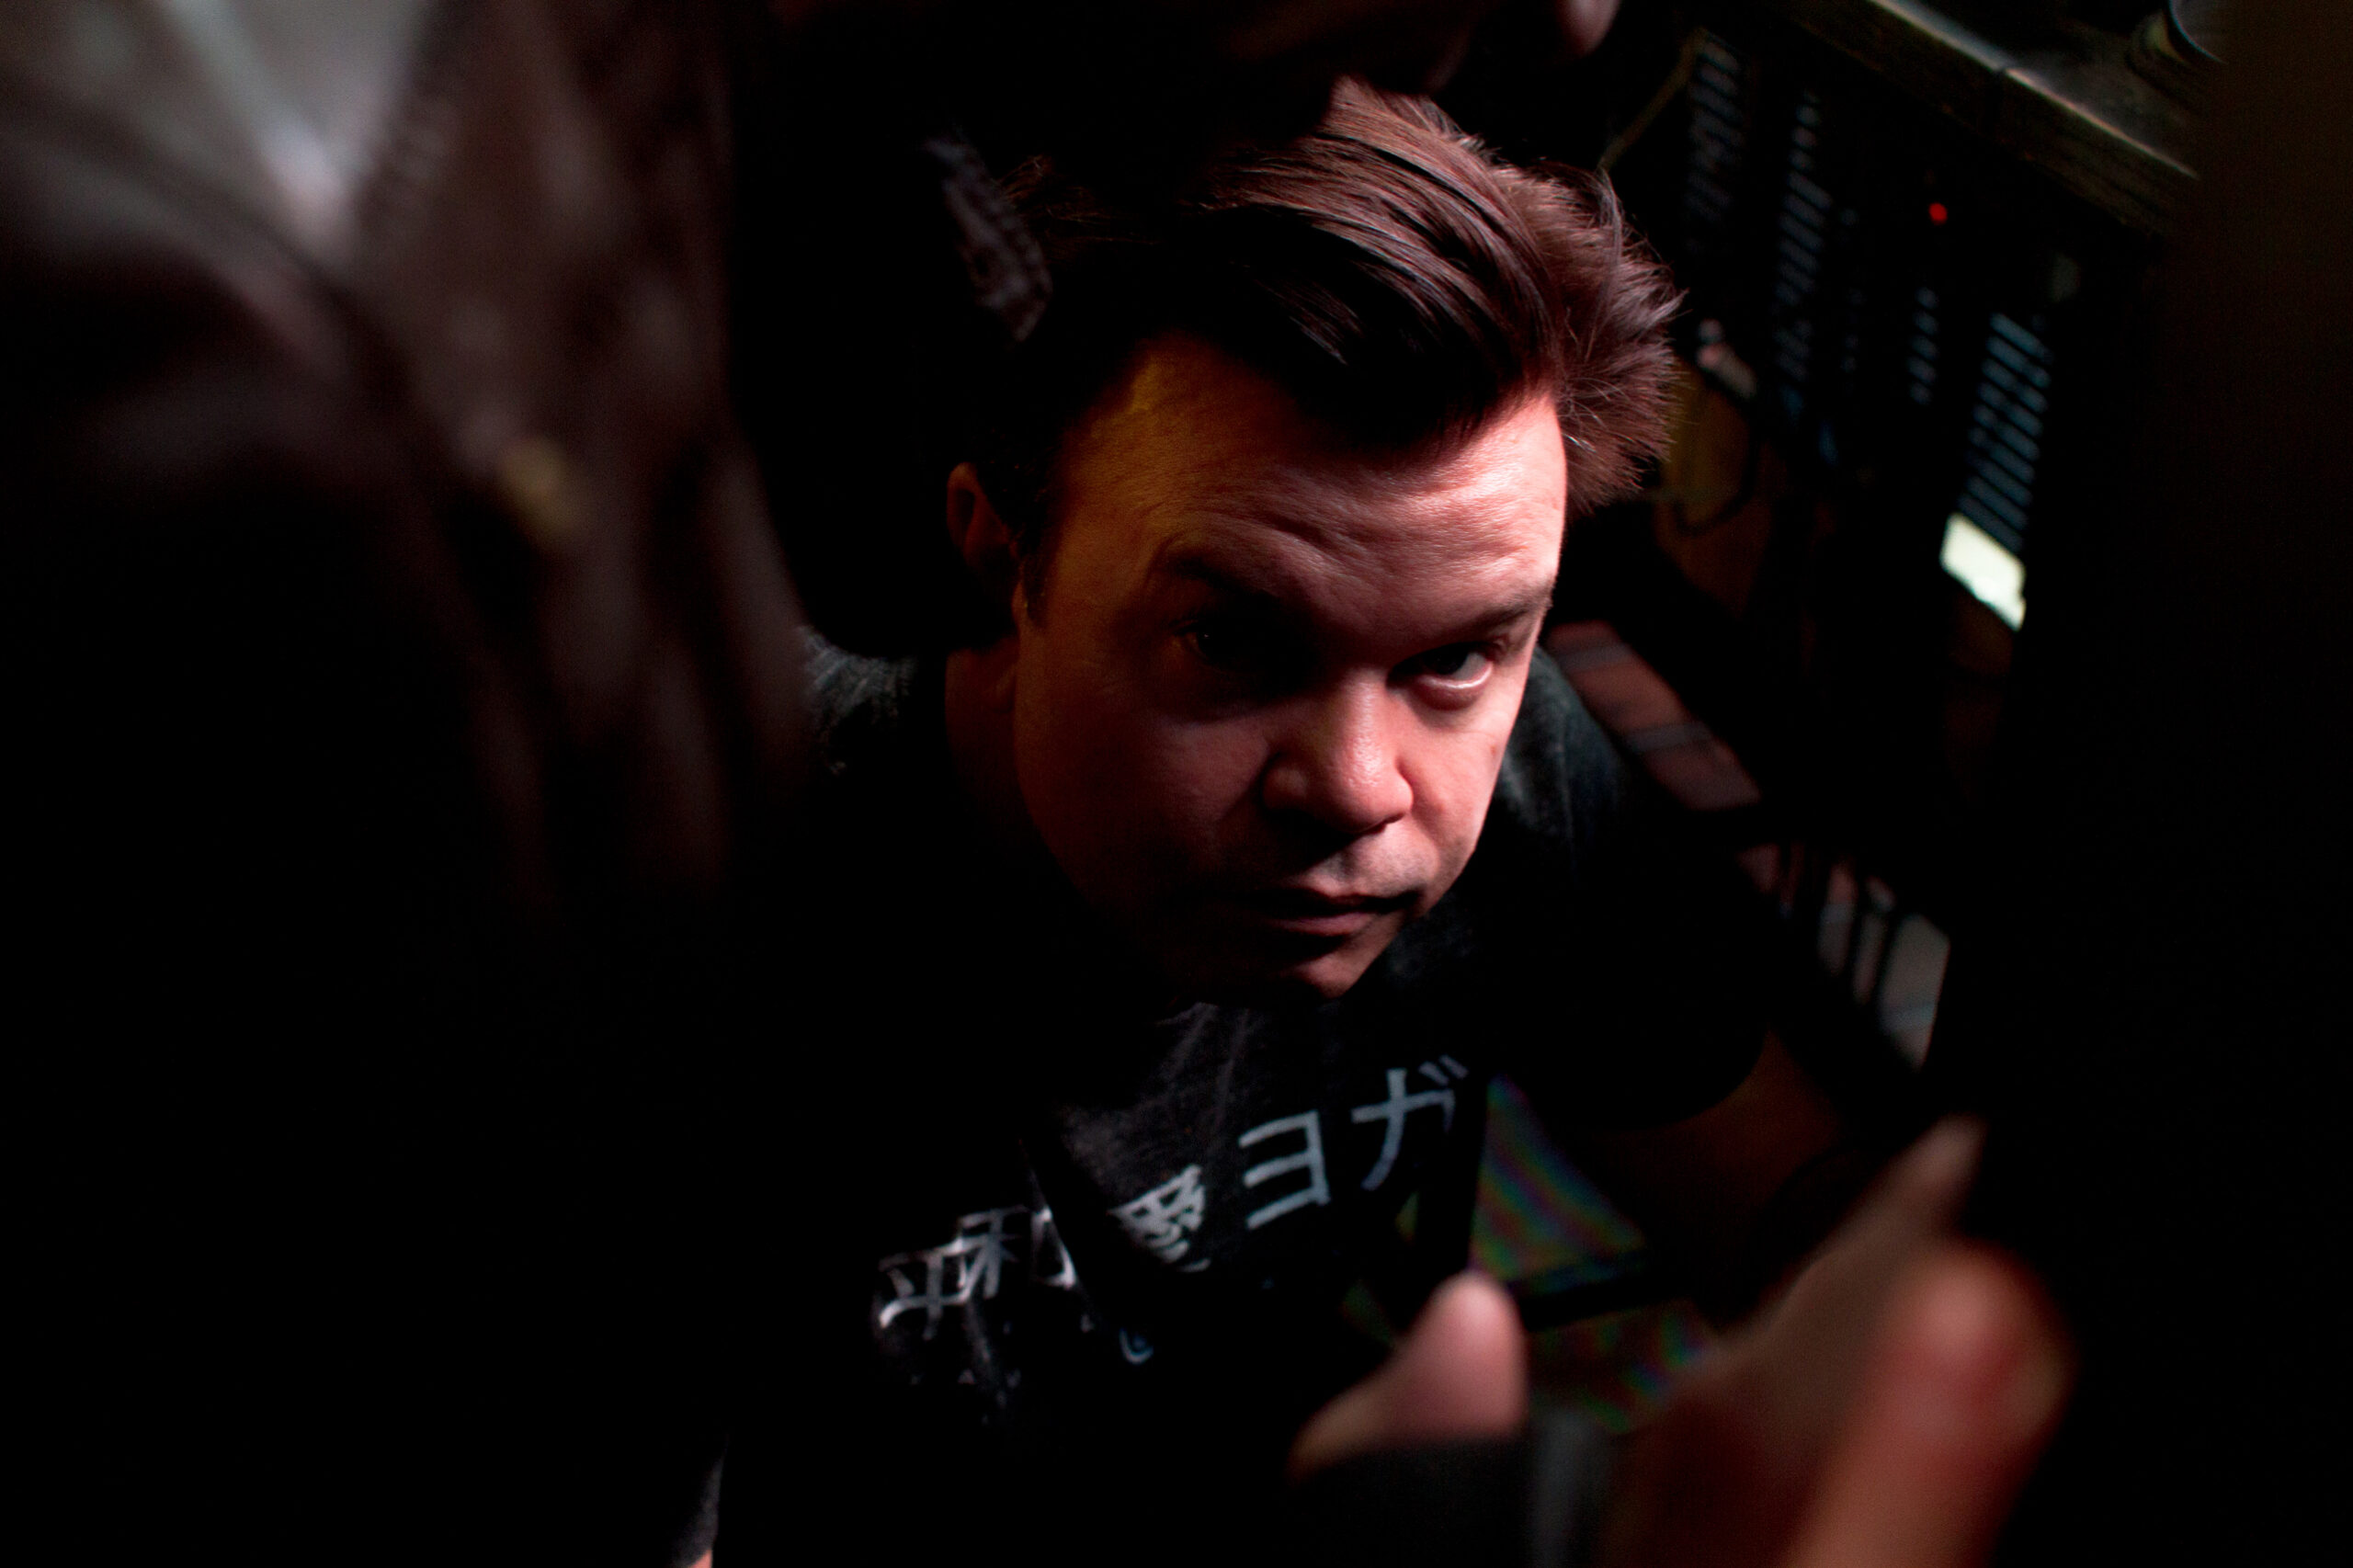 Paul Oakenfold and Runway unleash a world's first in 3D NFT